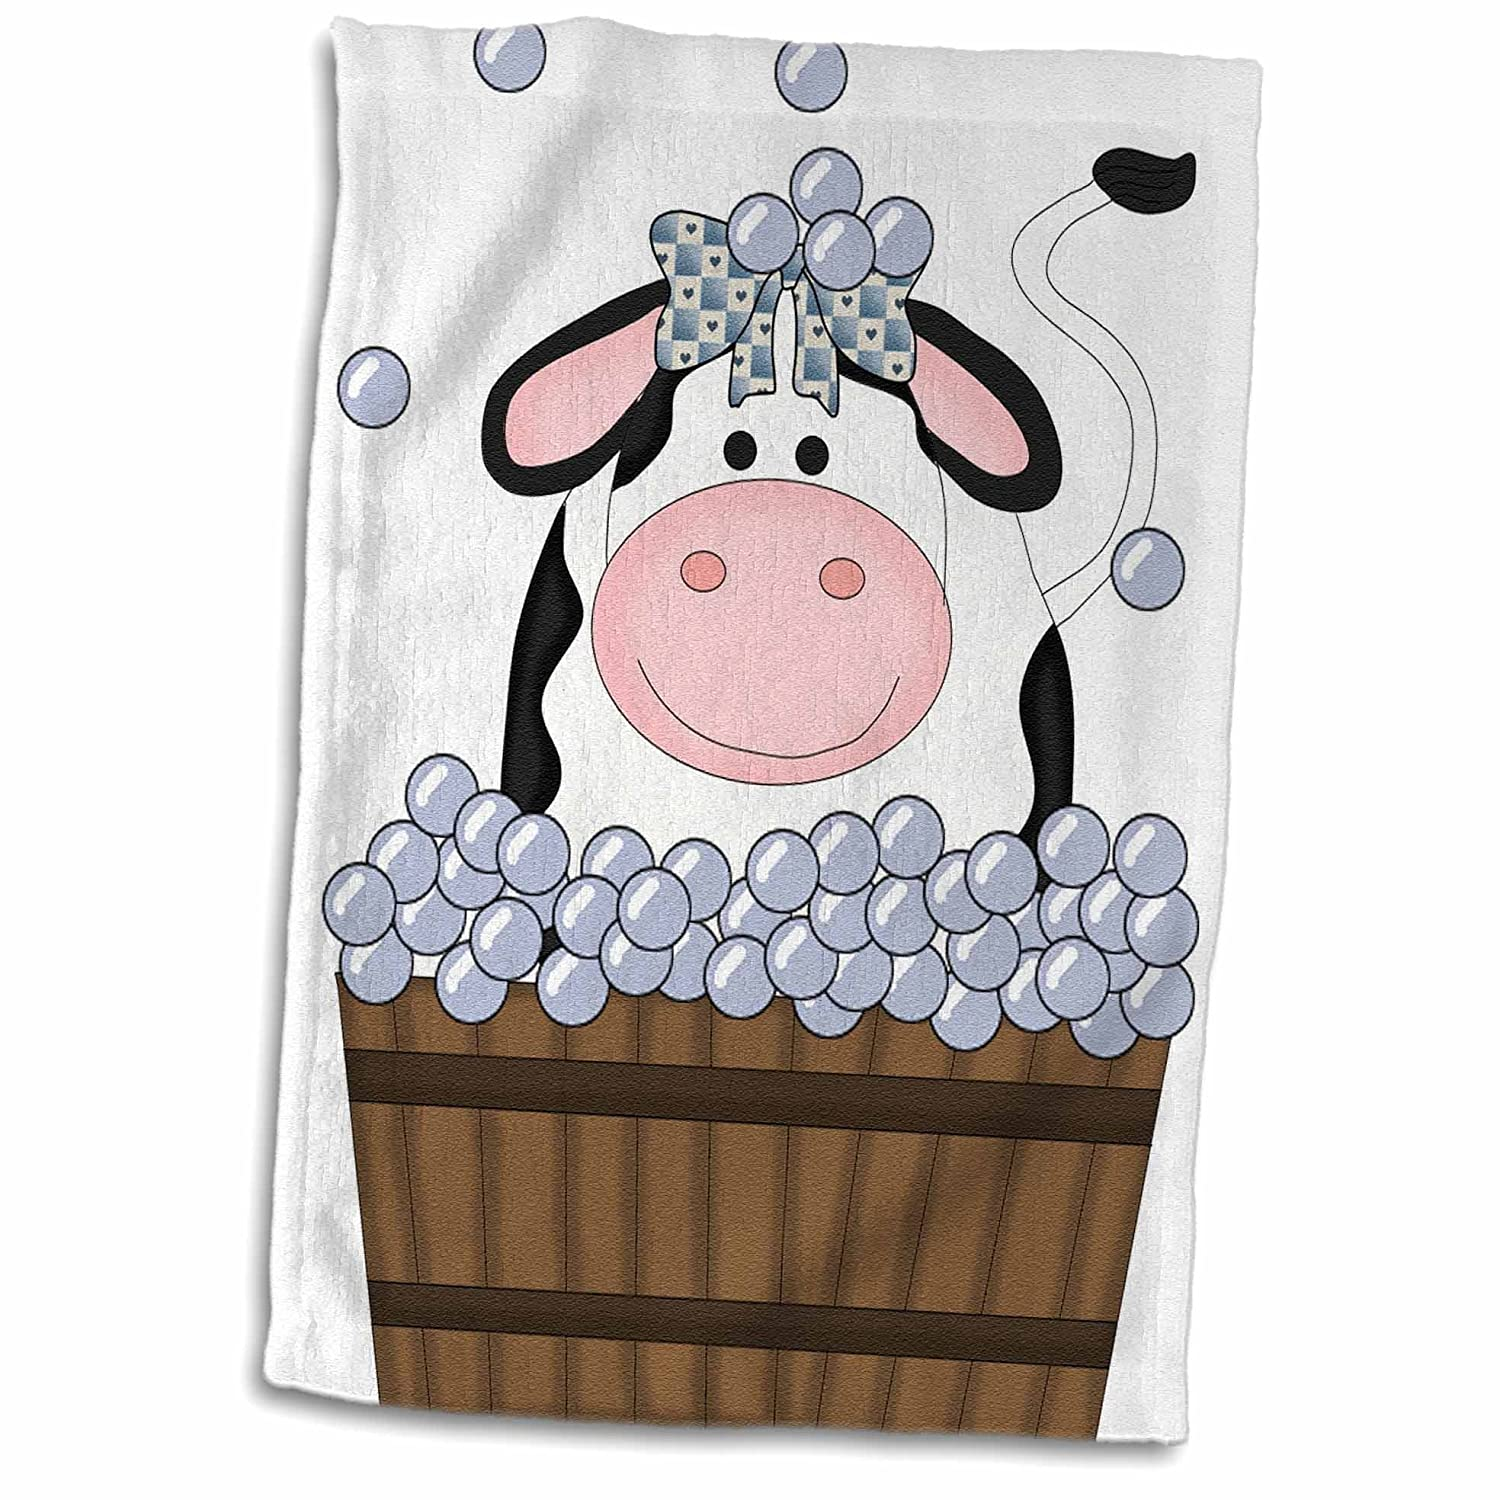 3D Rose Cute Girl Cow in A Wooden Bath Tub with Bubbles Hand Towel 15 x 22 Multicolor